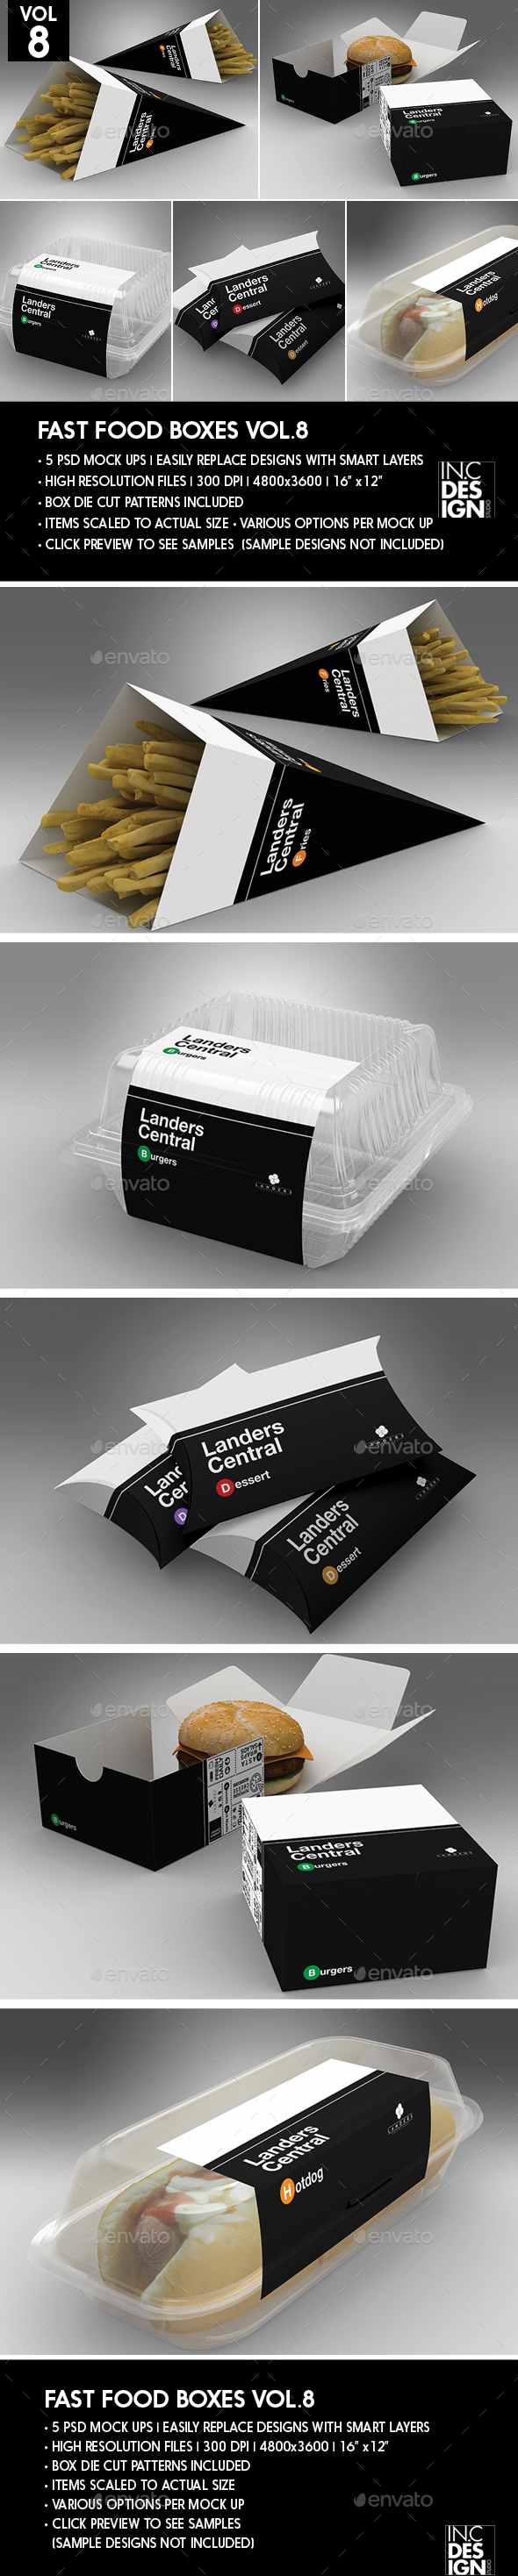 Fast Food Boxes Vol.8:Take Out Packaging Mock Ups